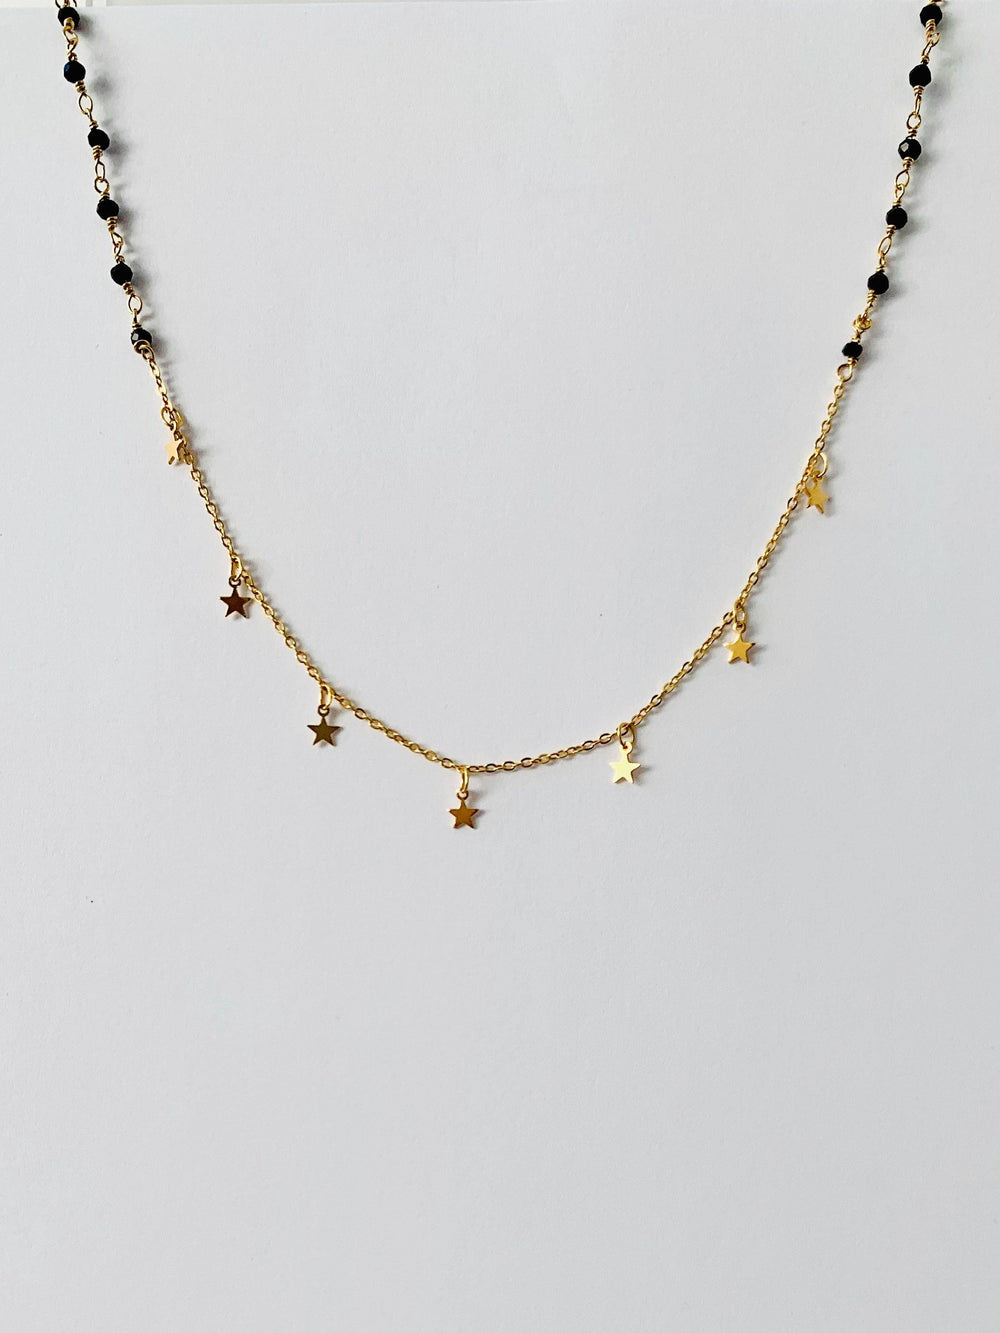 Trix Gold Necklace - Amillis